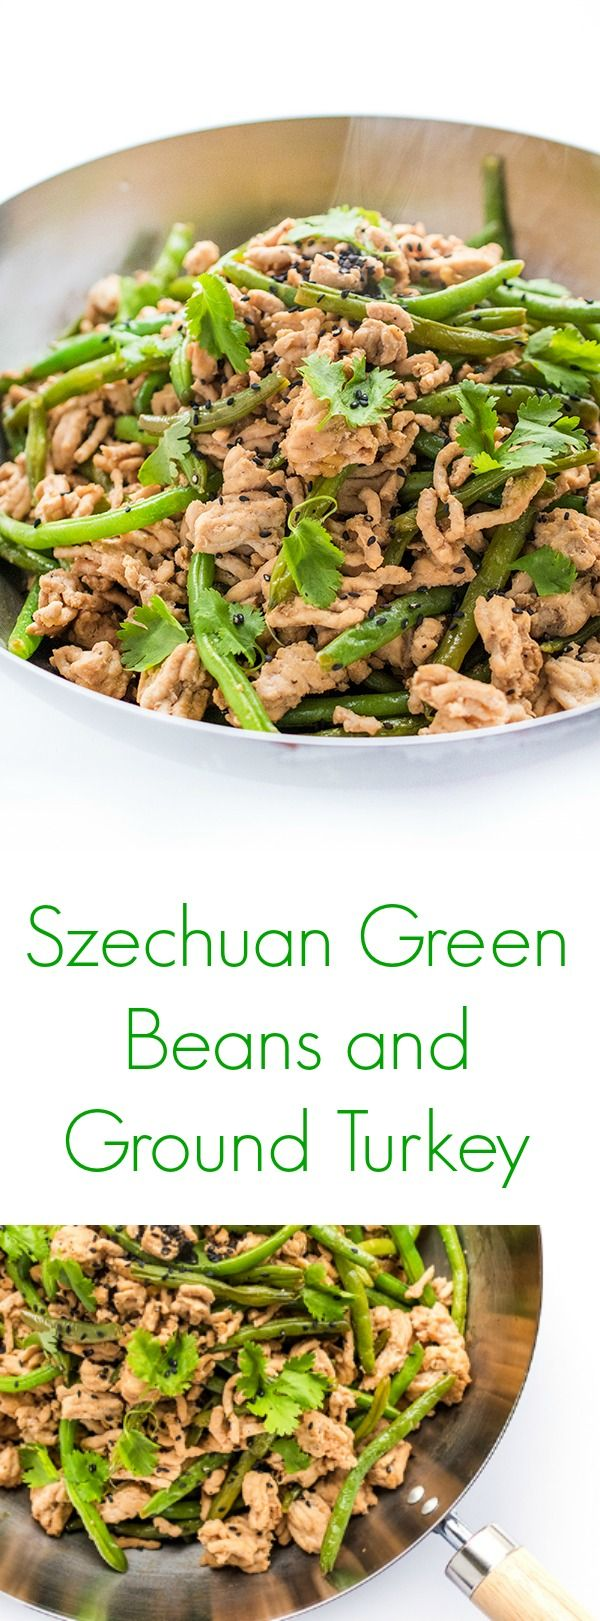 This gluten free, Asian stir-fry that can be made with any type of vegetable! A dinner that can be made in 20 minutes and makes great leftovers.